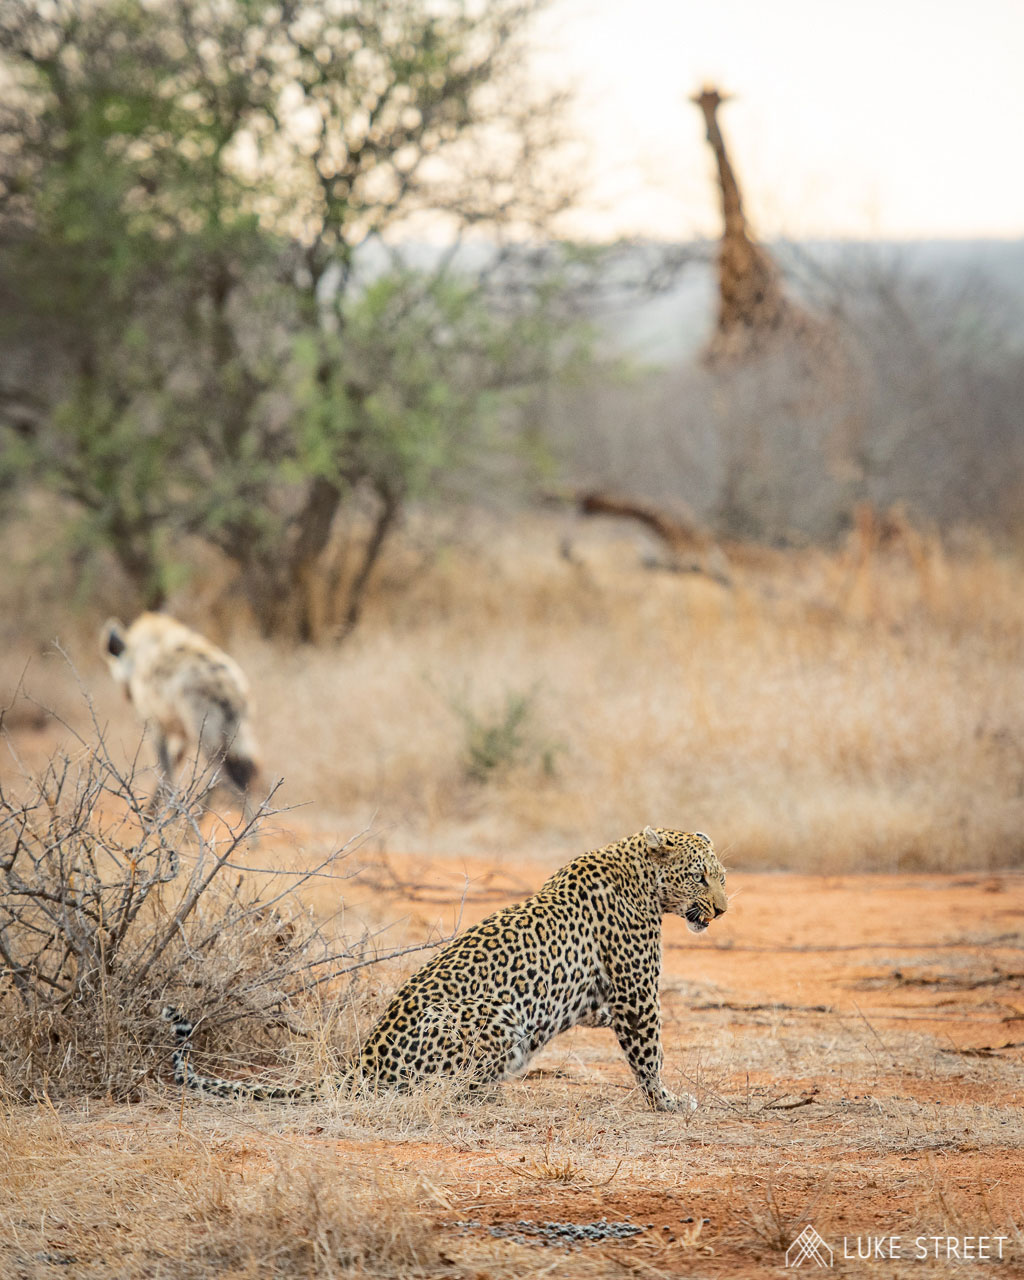 Tanda Tula - male leopard with giraffe and hyena in the background